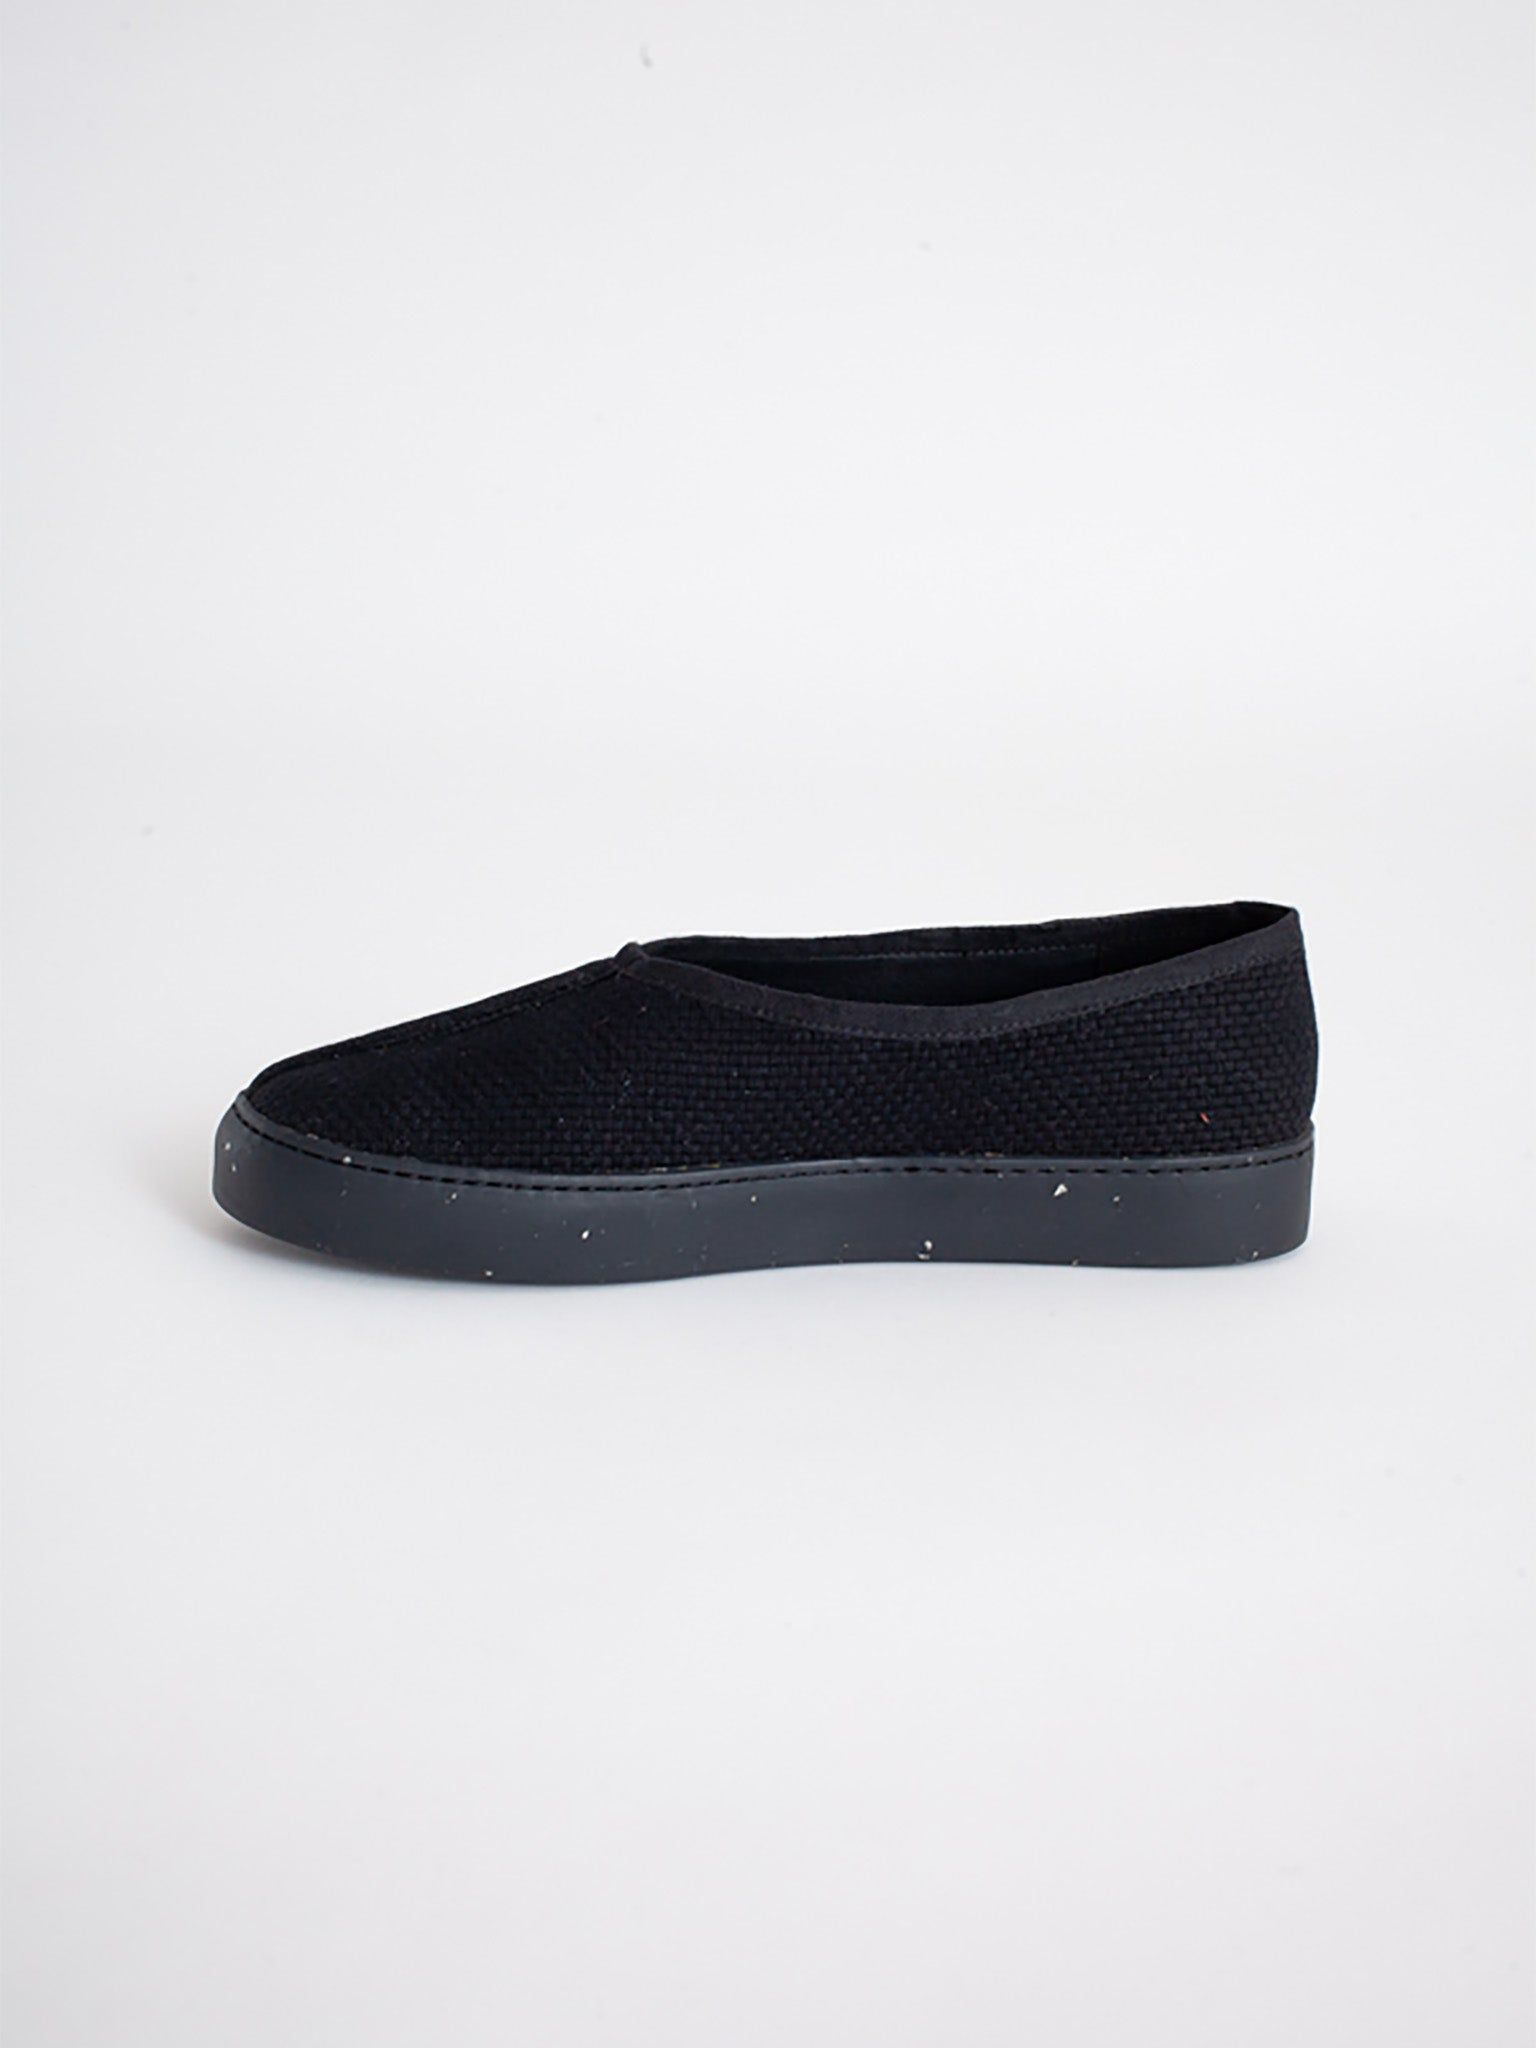 Reality Studio Ming Slip-On Black Vegan